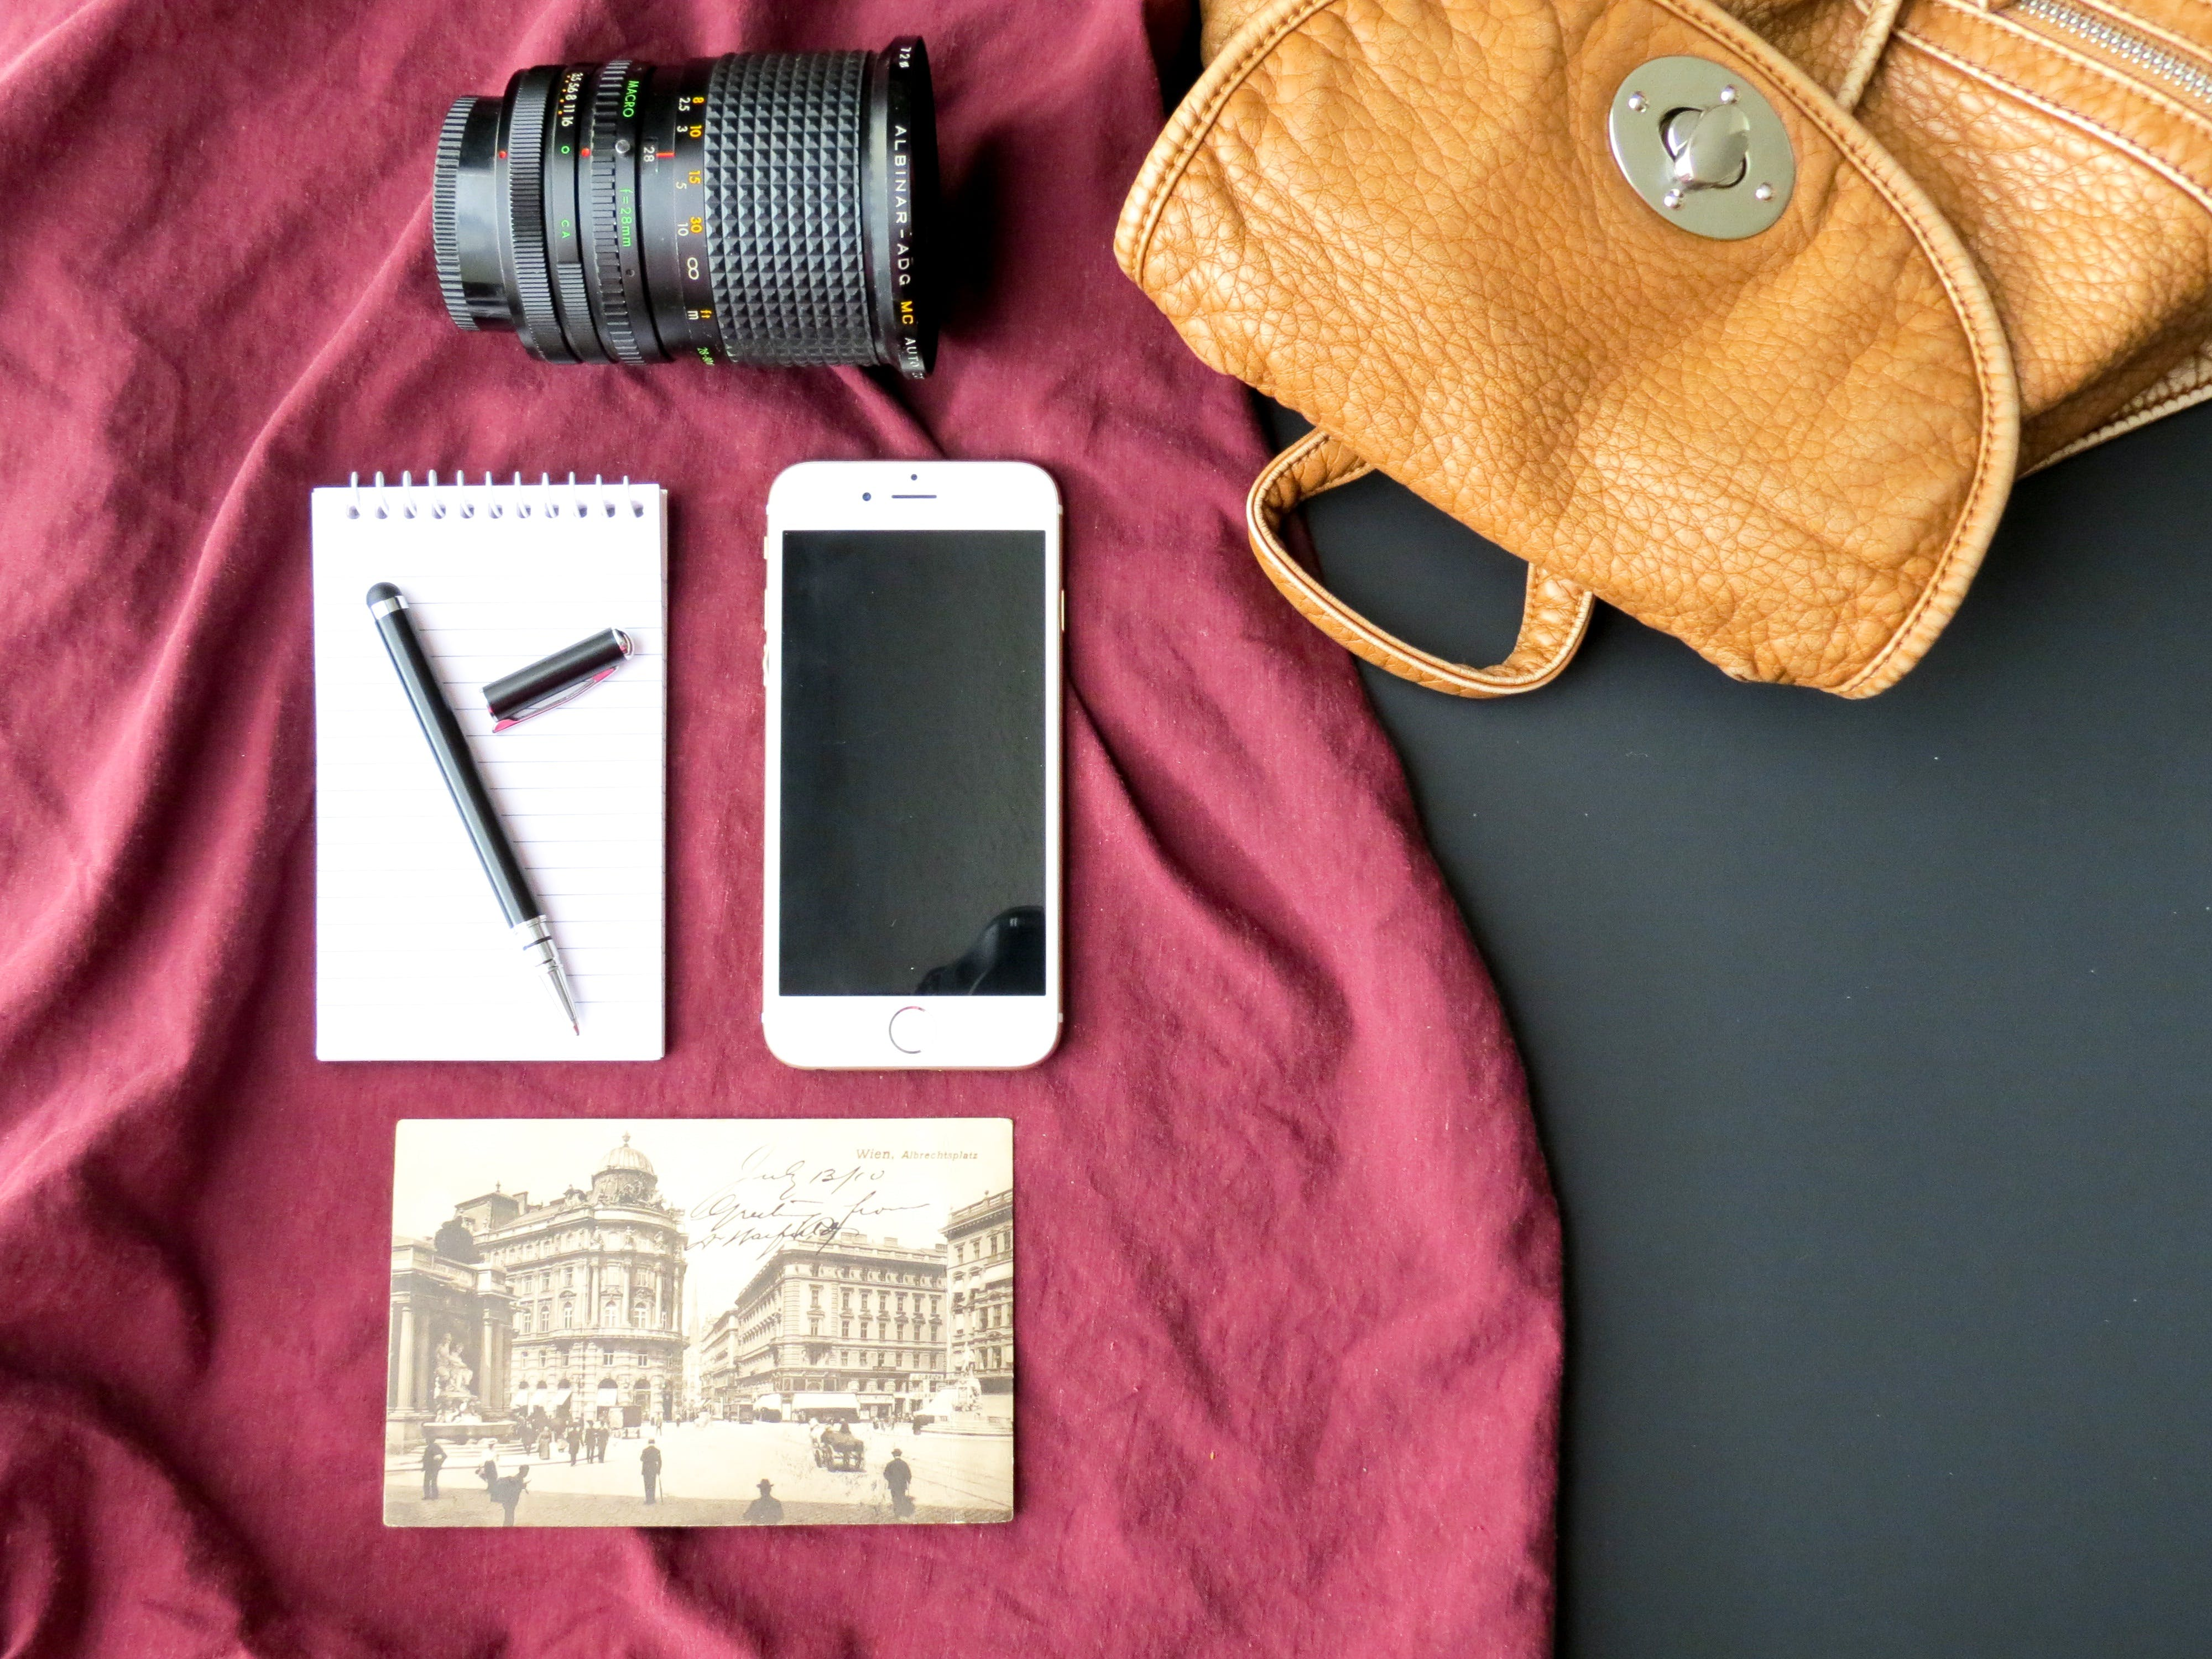 accessory, background, backpack